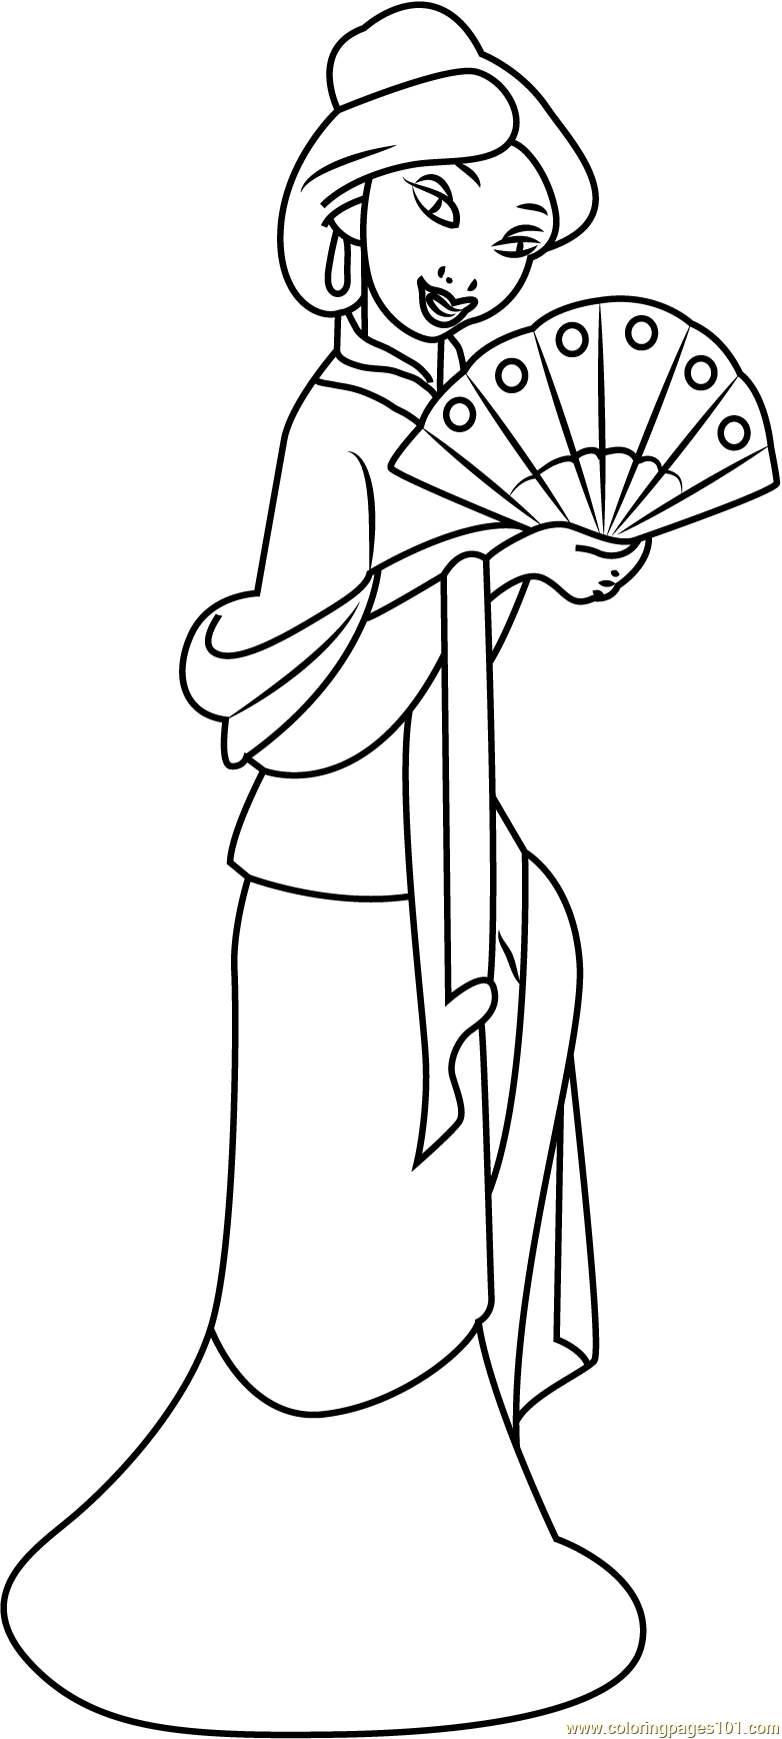 mulan for coloring mulan with hand fan coloring page free mulan coloring for mulan coloring